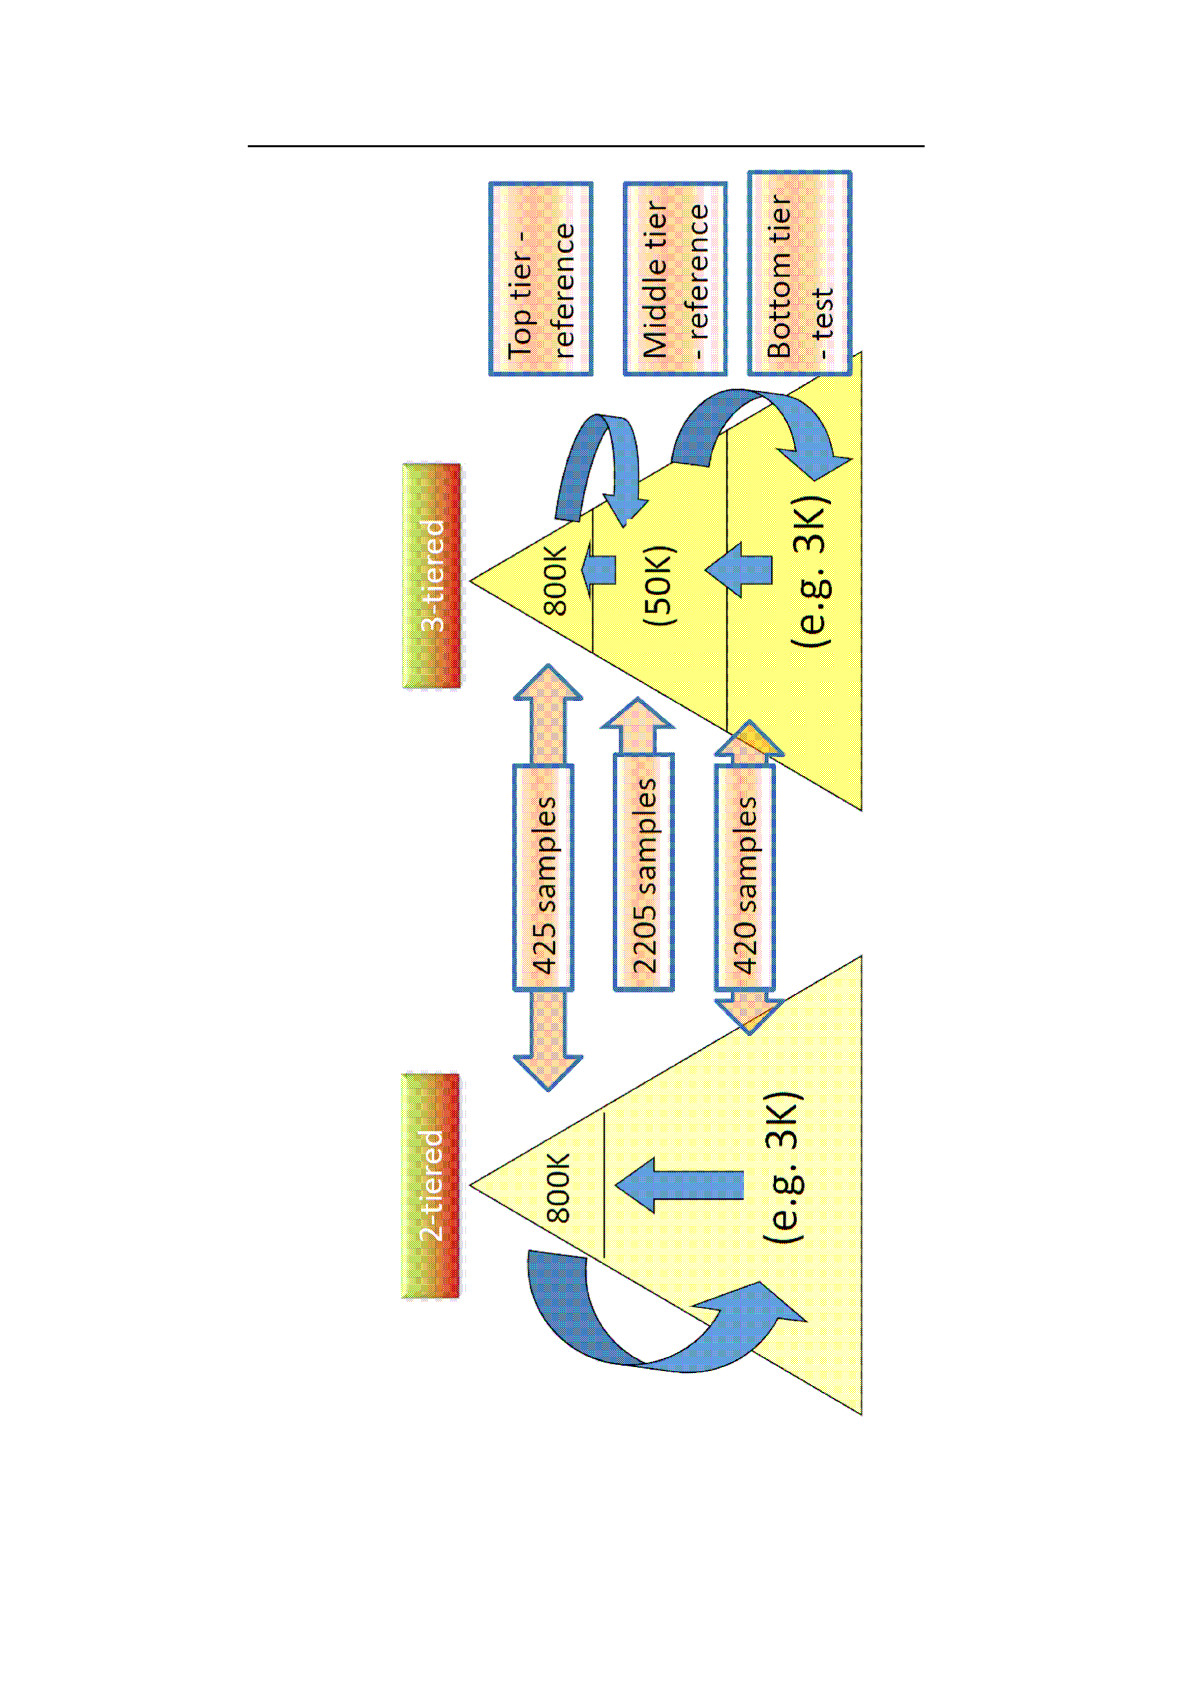 https://static-content.springer.com/image/art%3A10.1186%2F1471-2164-13-538/MediaObjects/12864_2012_Article_4479_Fig1_HTML.jpg